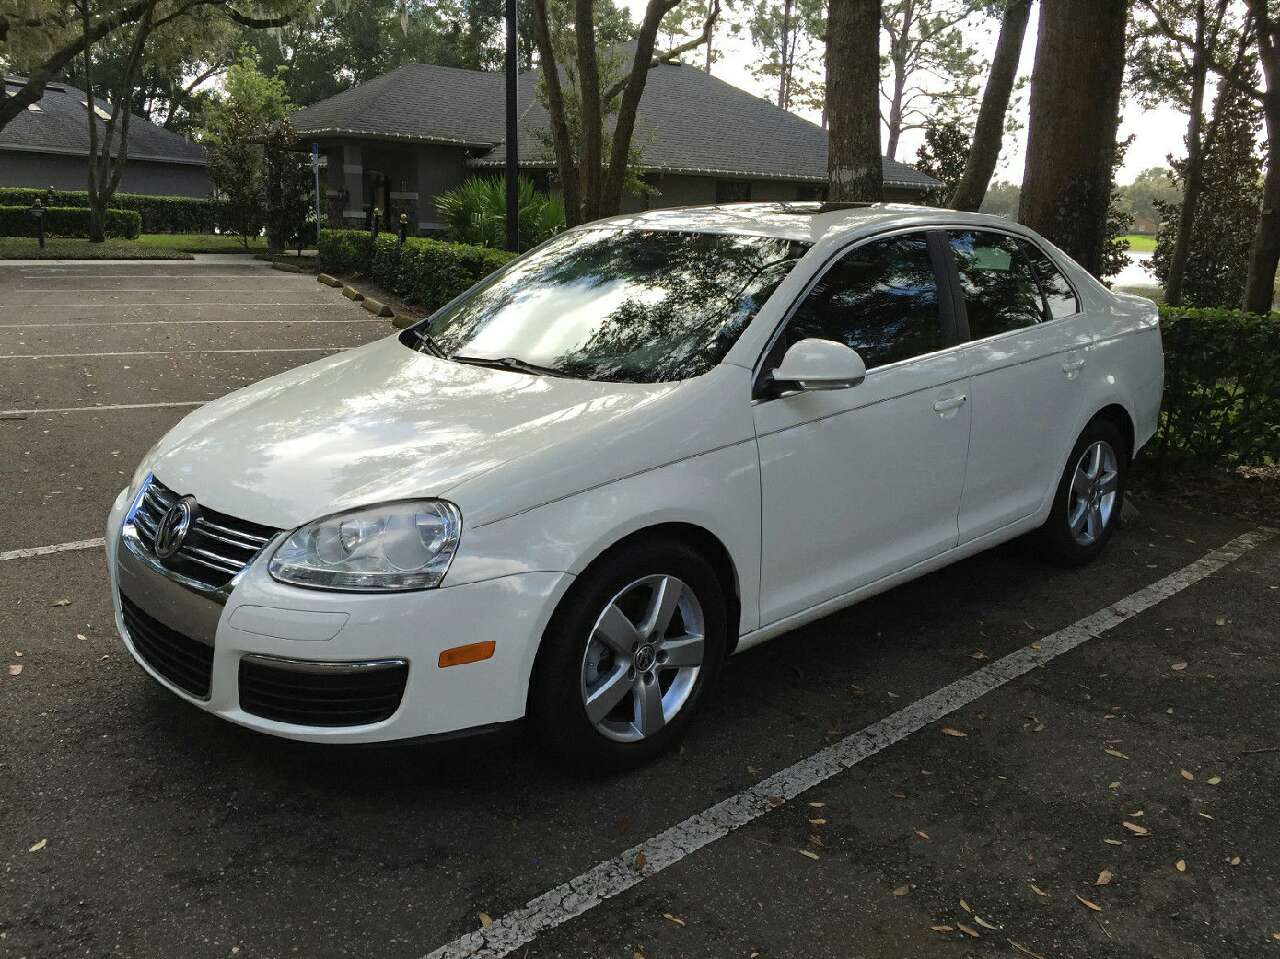 Used Cars And Vehicles In The United States Letgo Page 114